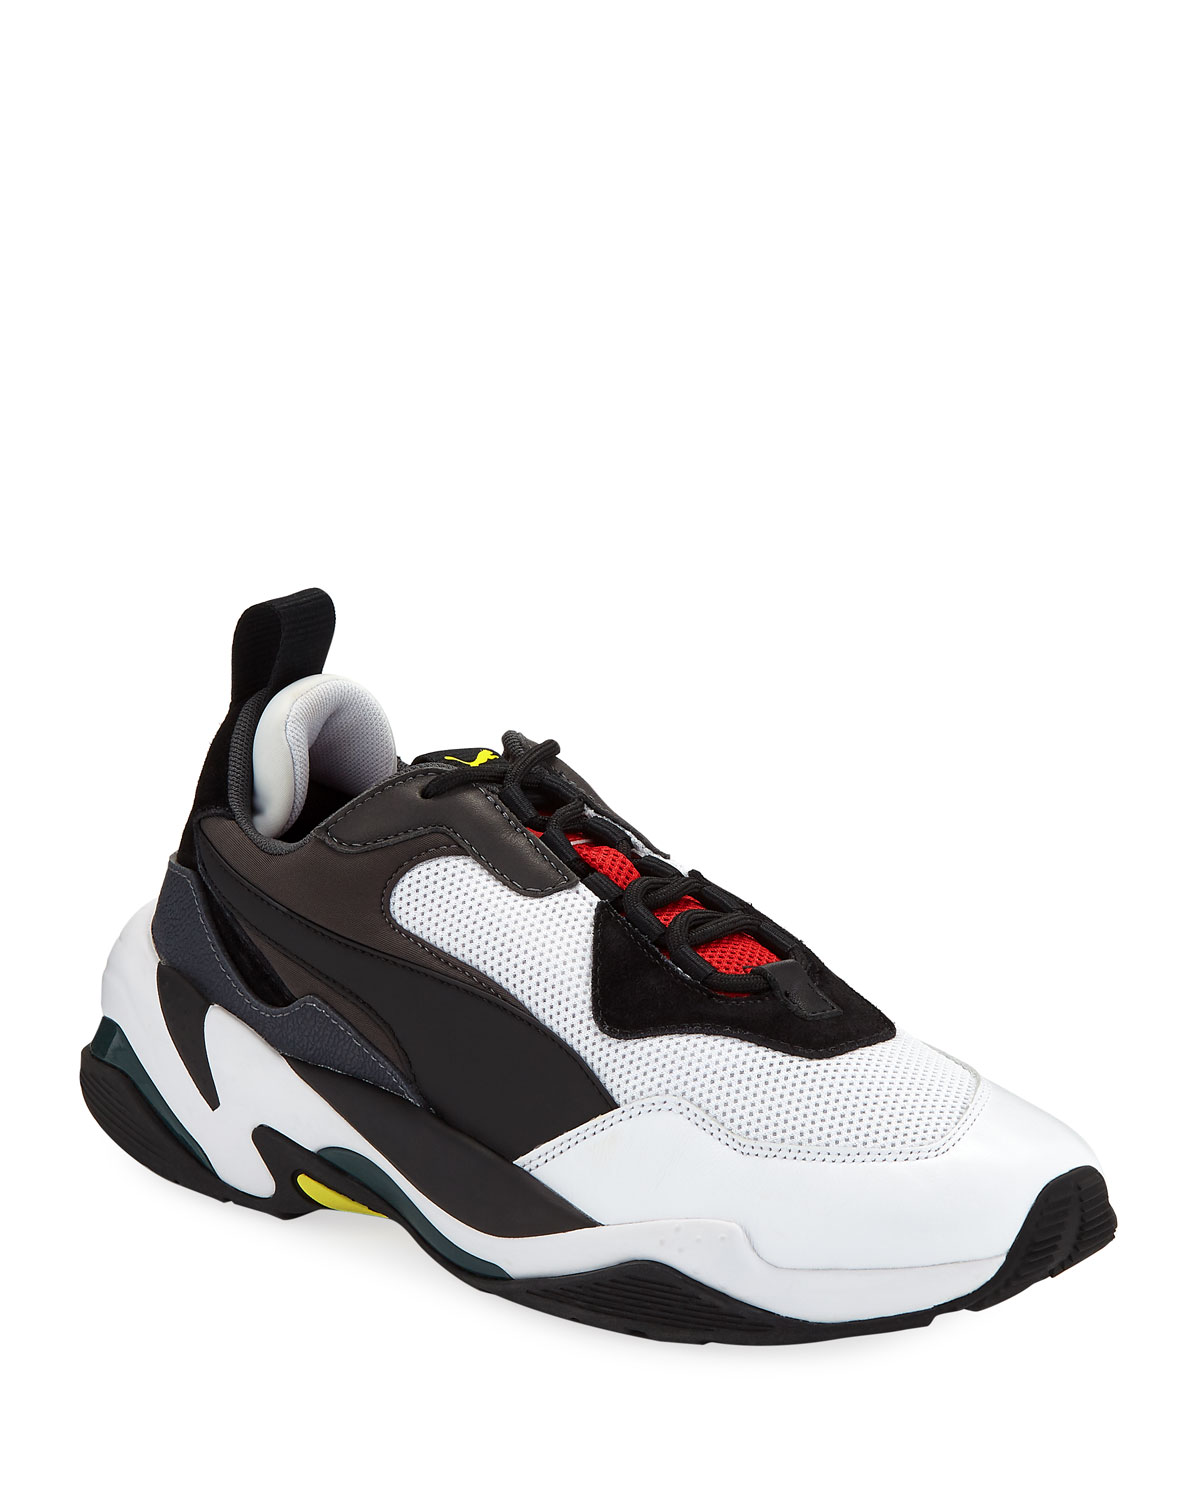 Puma Men s Thunder Spectra Sneakers  086f1c8a5